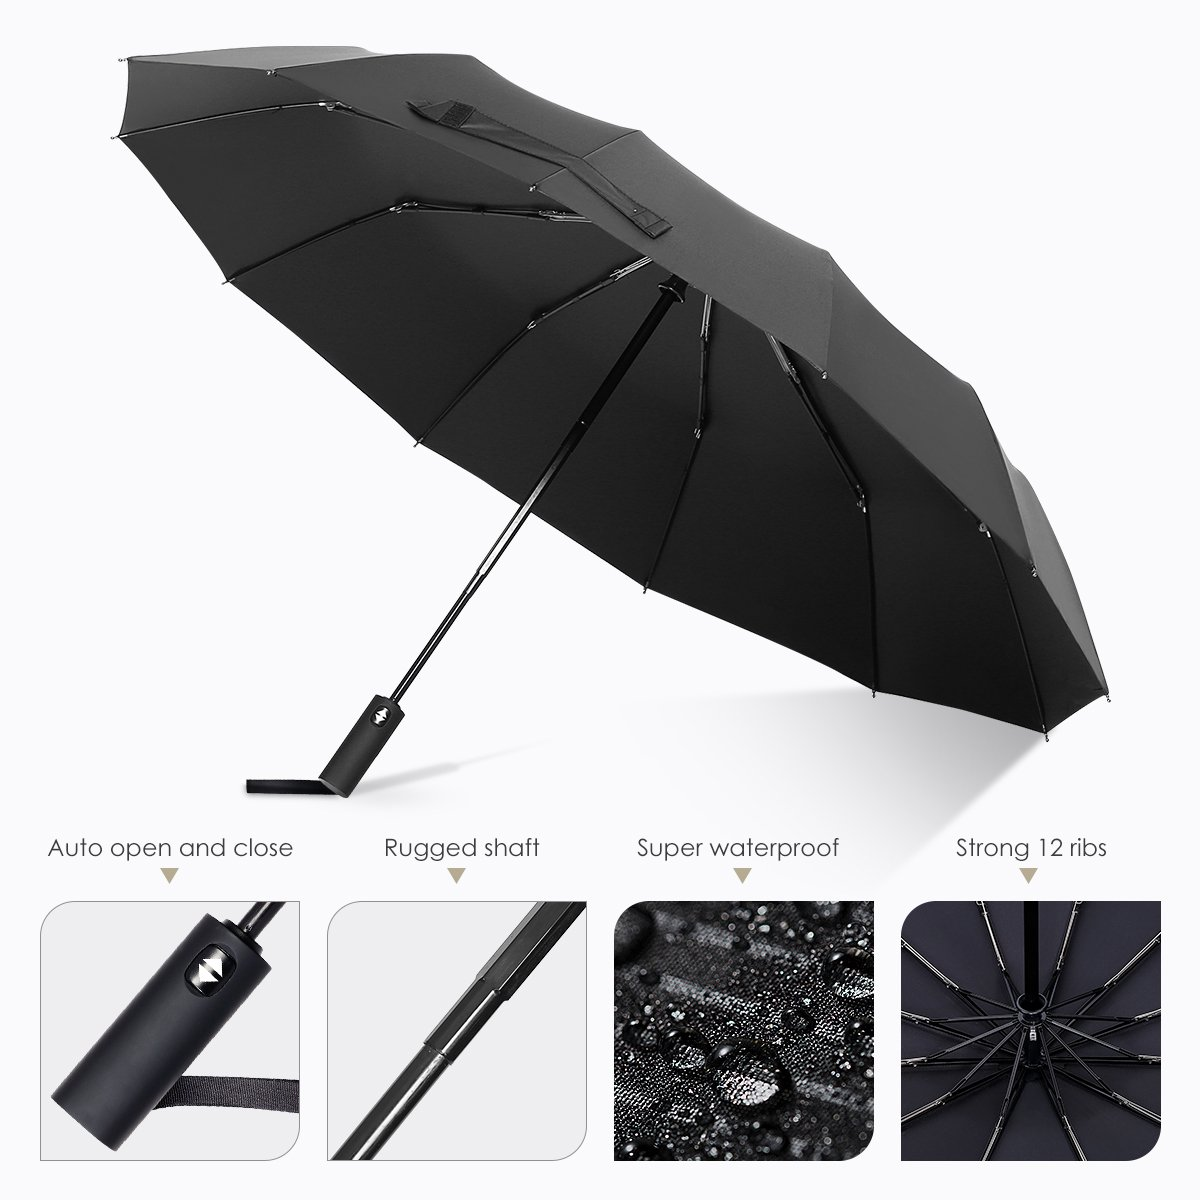 Double Layer Inside Out Folding Umbrella Reverse Inverted Windproof Glowing Soccer Ball Fire And Ice Umbrella Upside Down Umbrellas with C-Shaped Handle for Women and Men